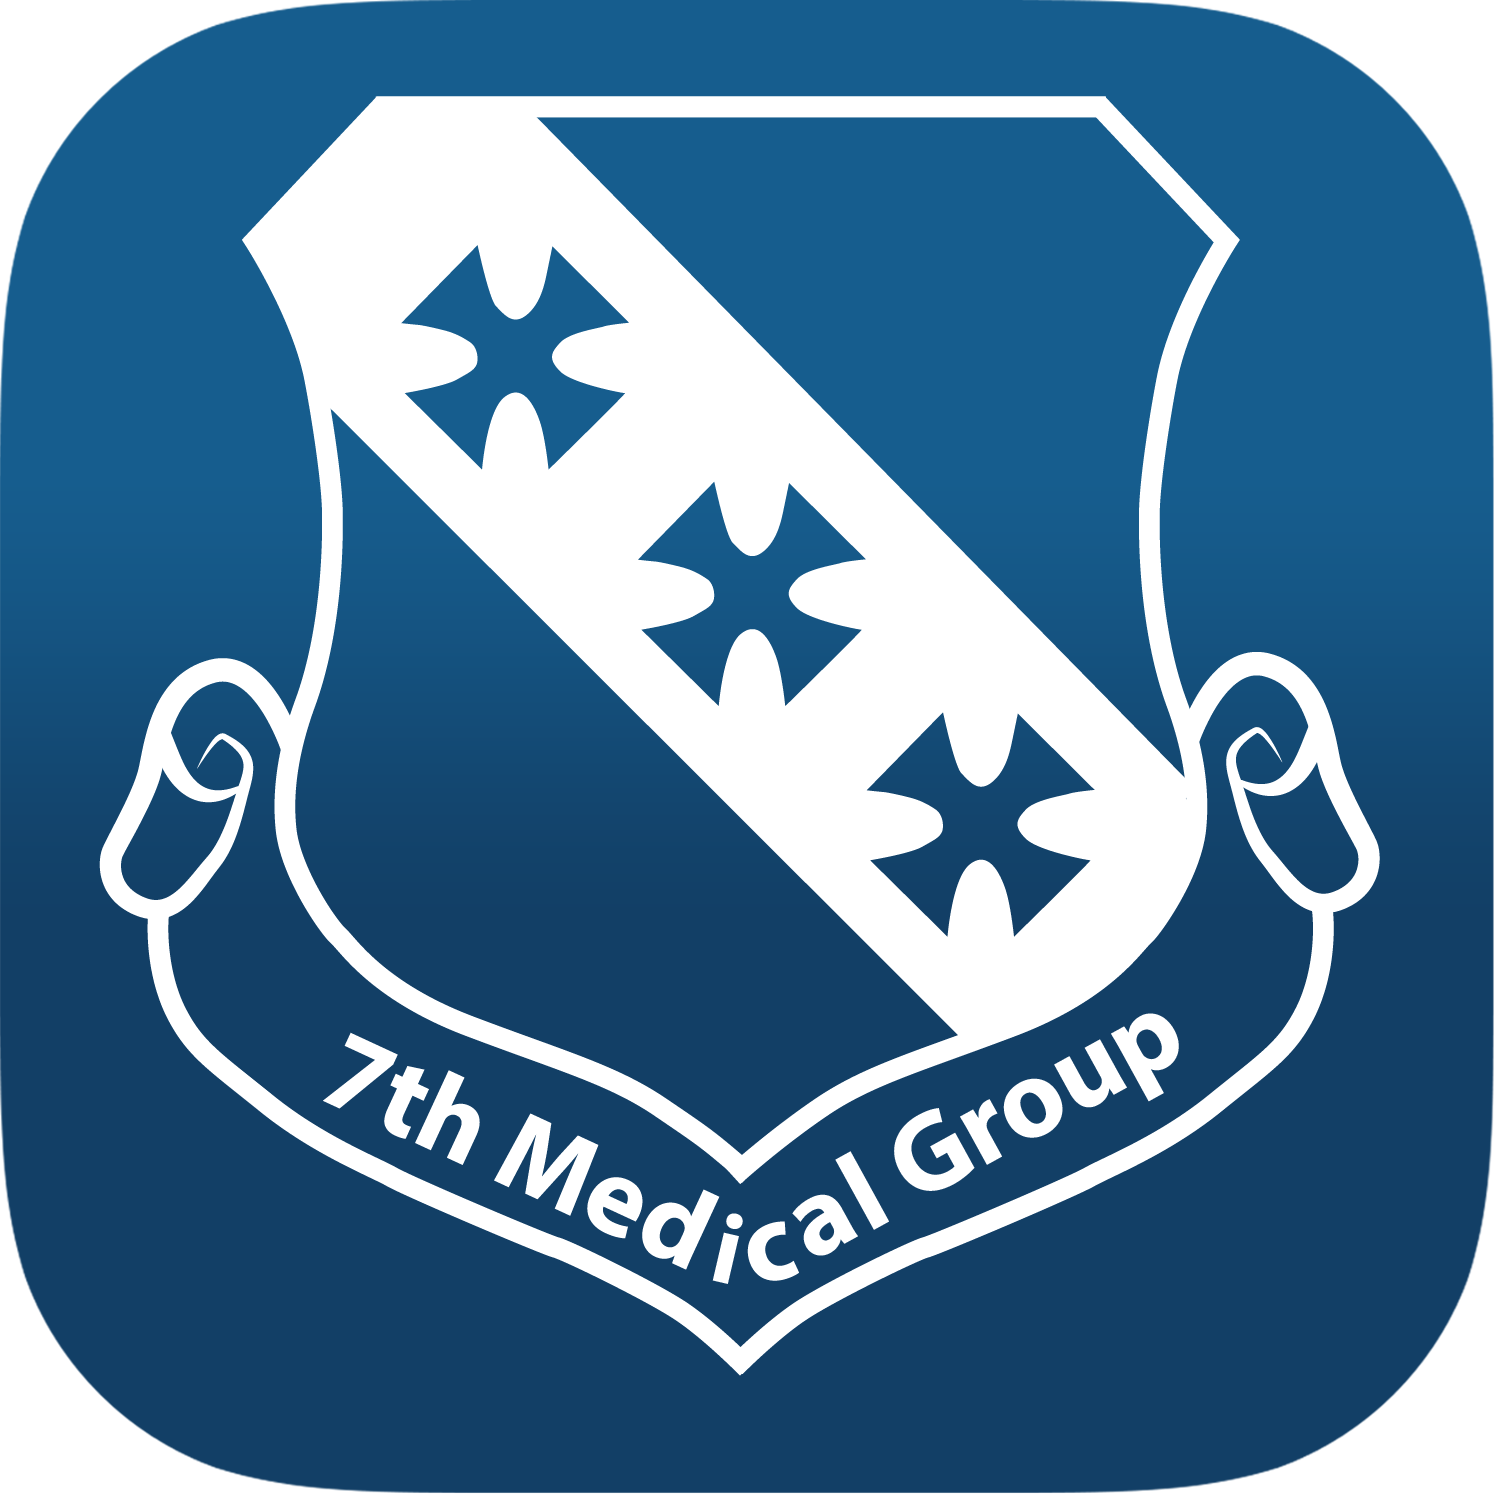 7th Medical Group